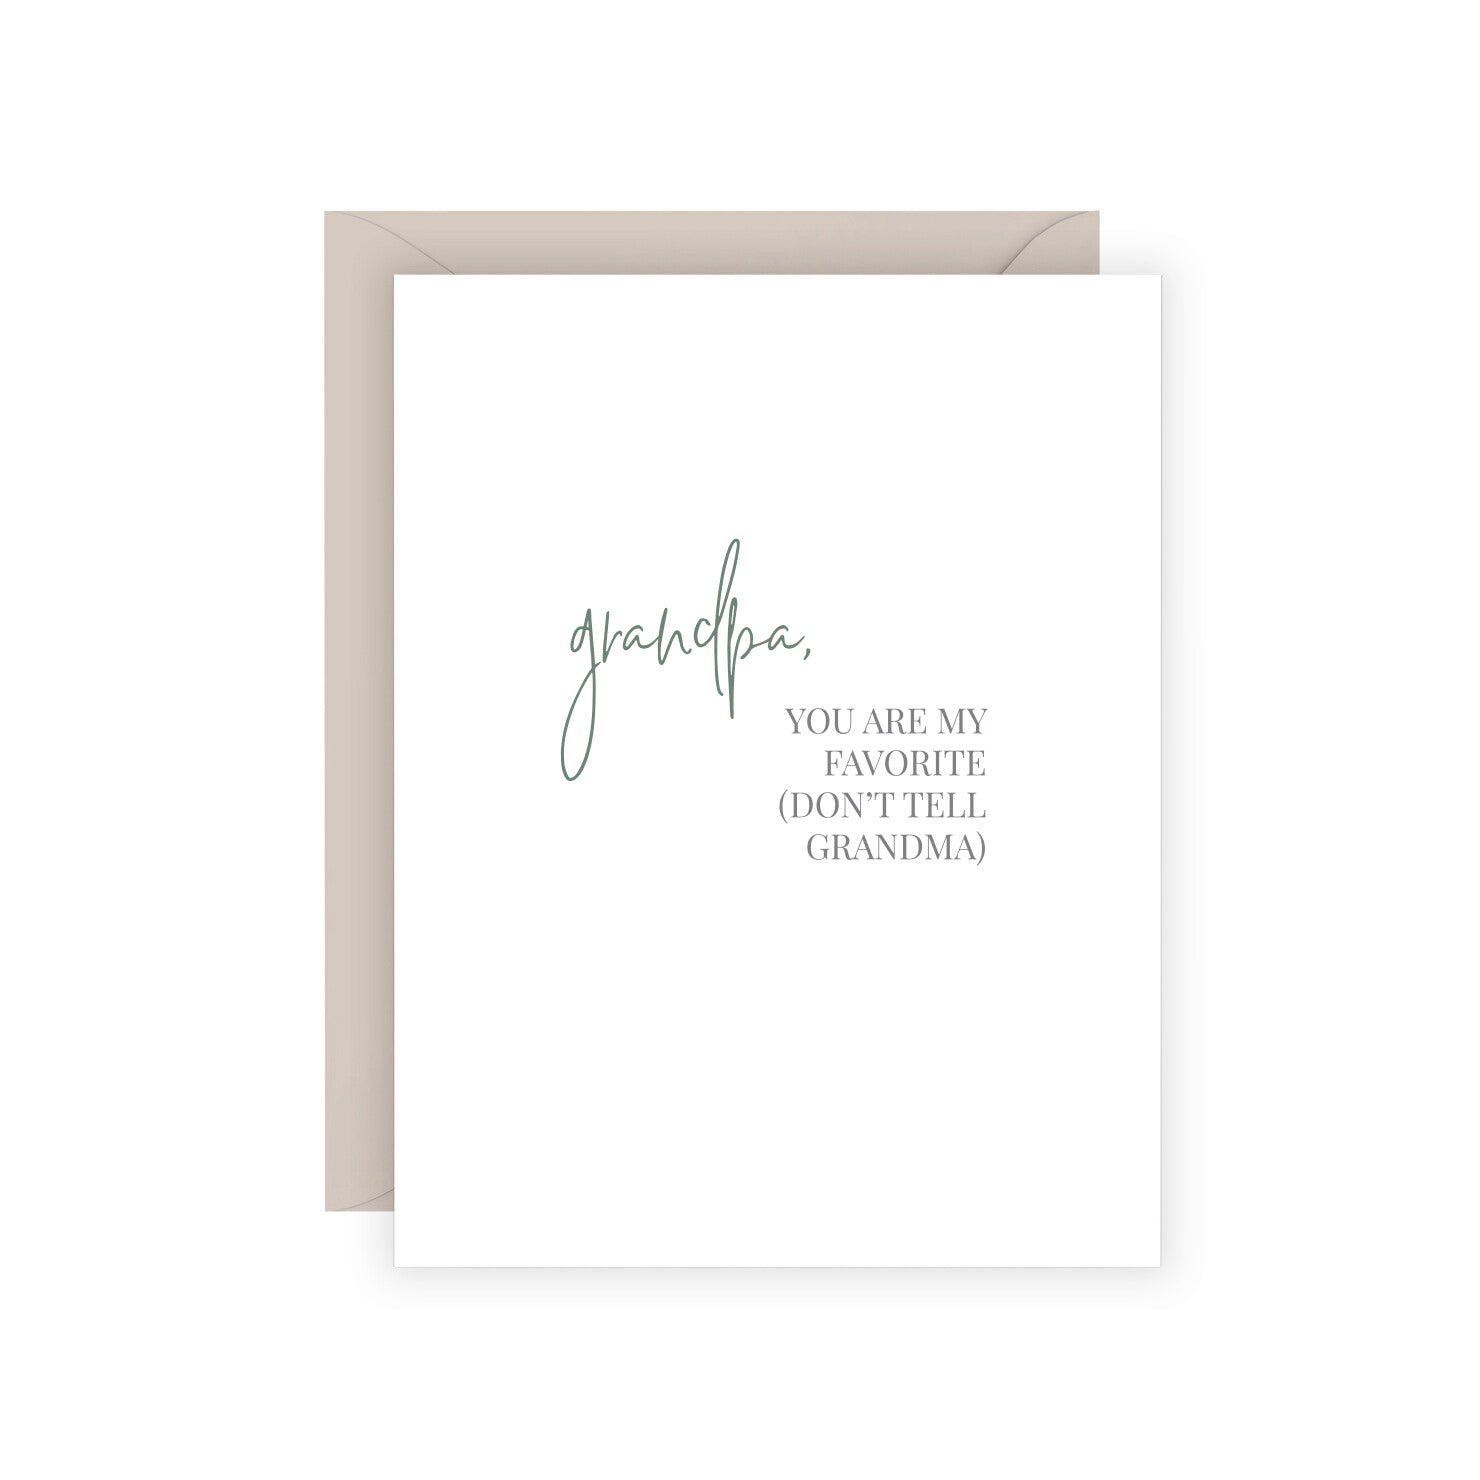 Grandpa Favorite Greeting Card